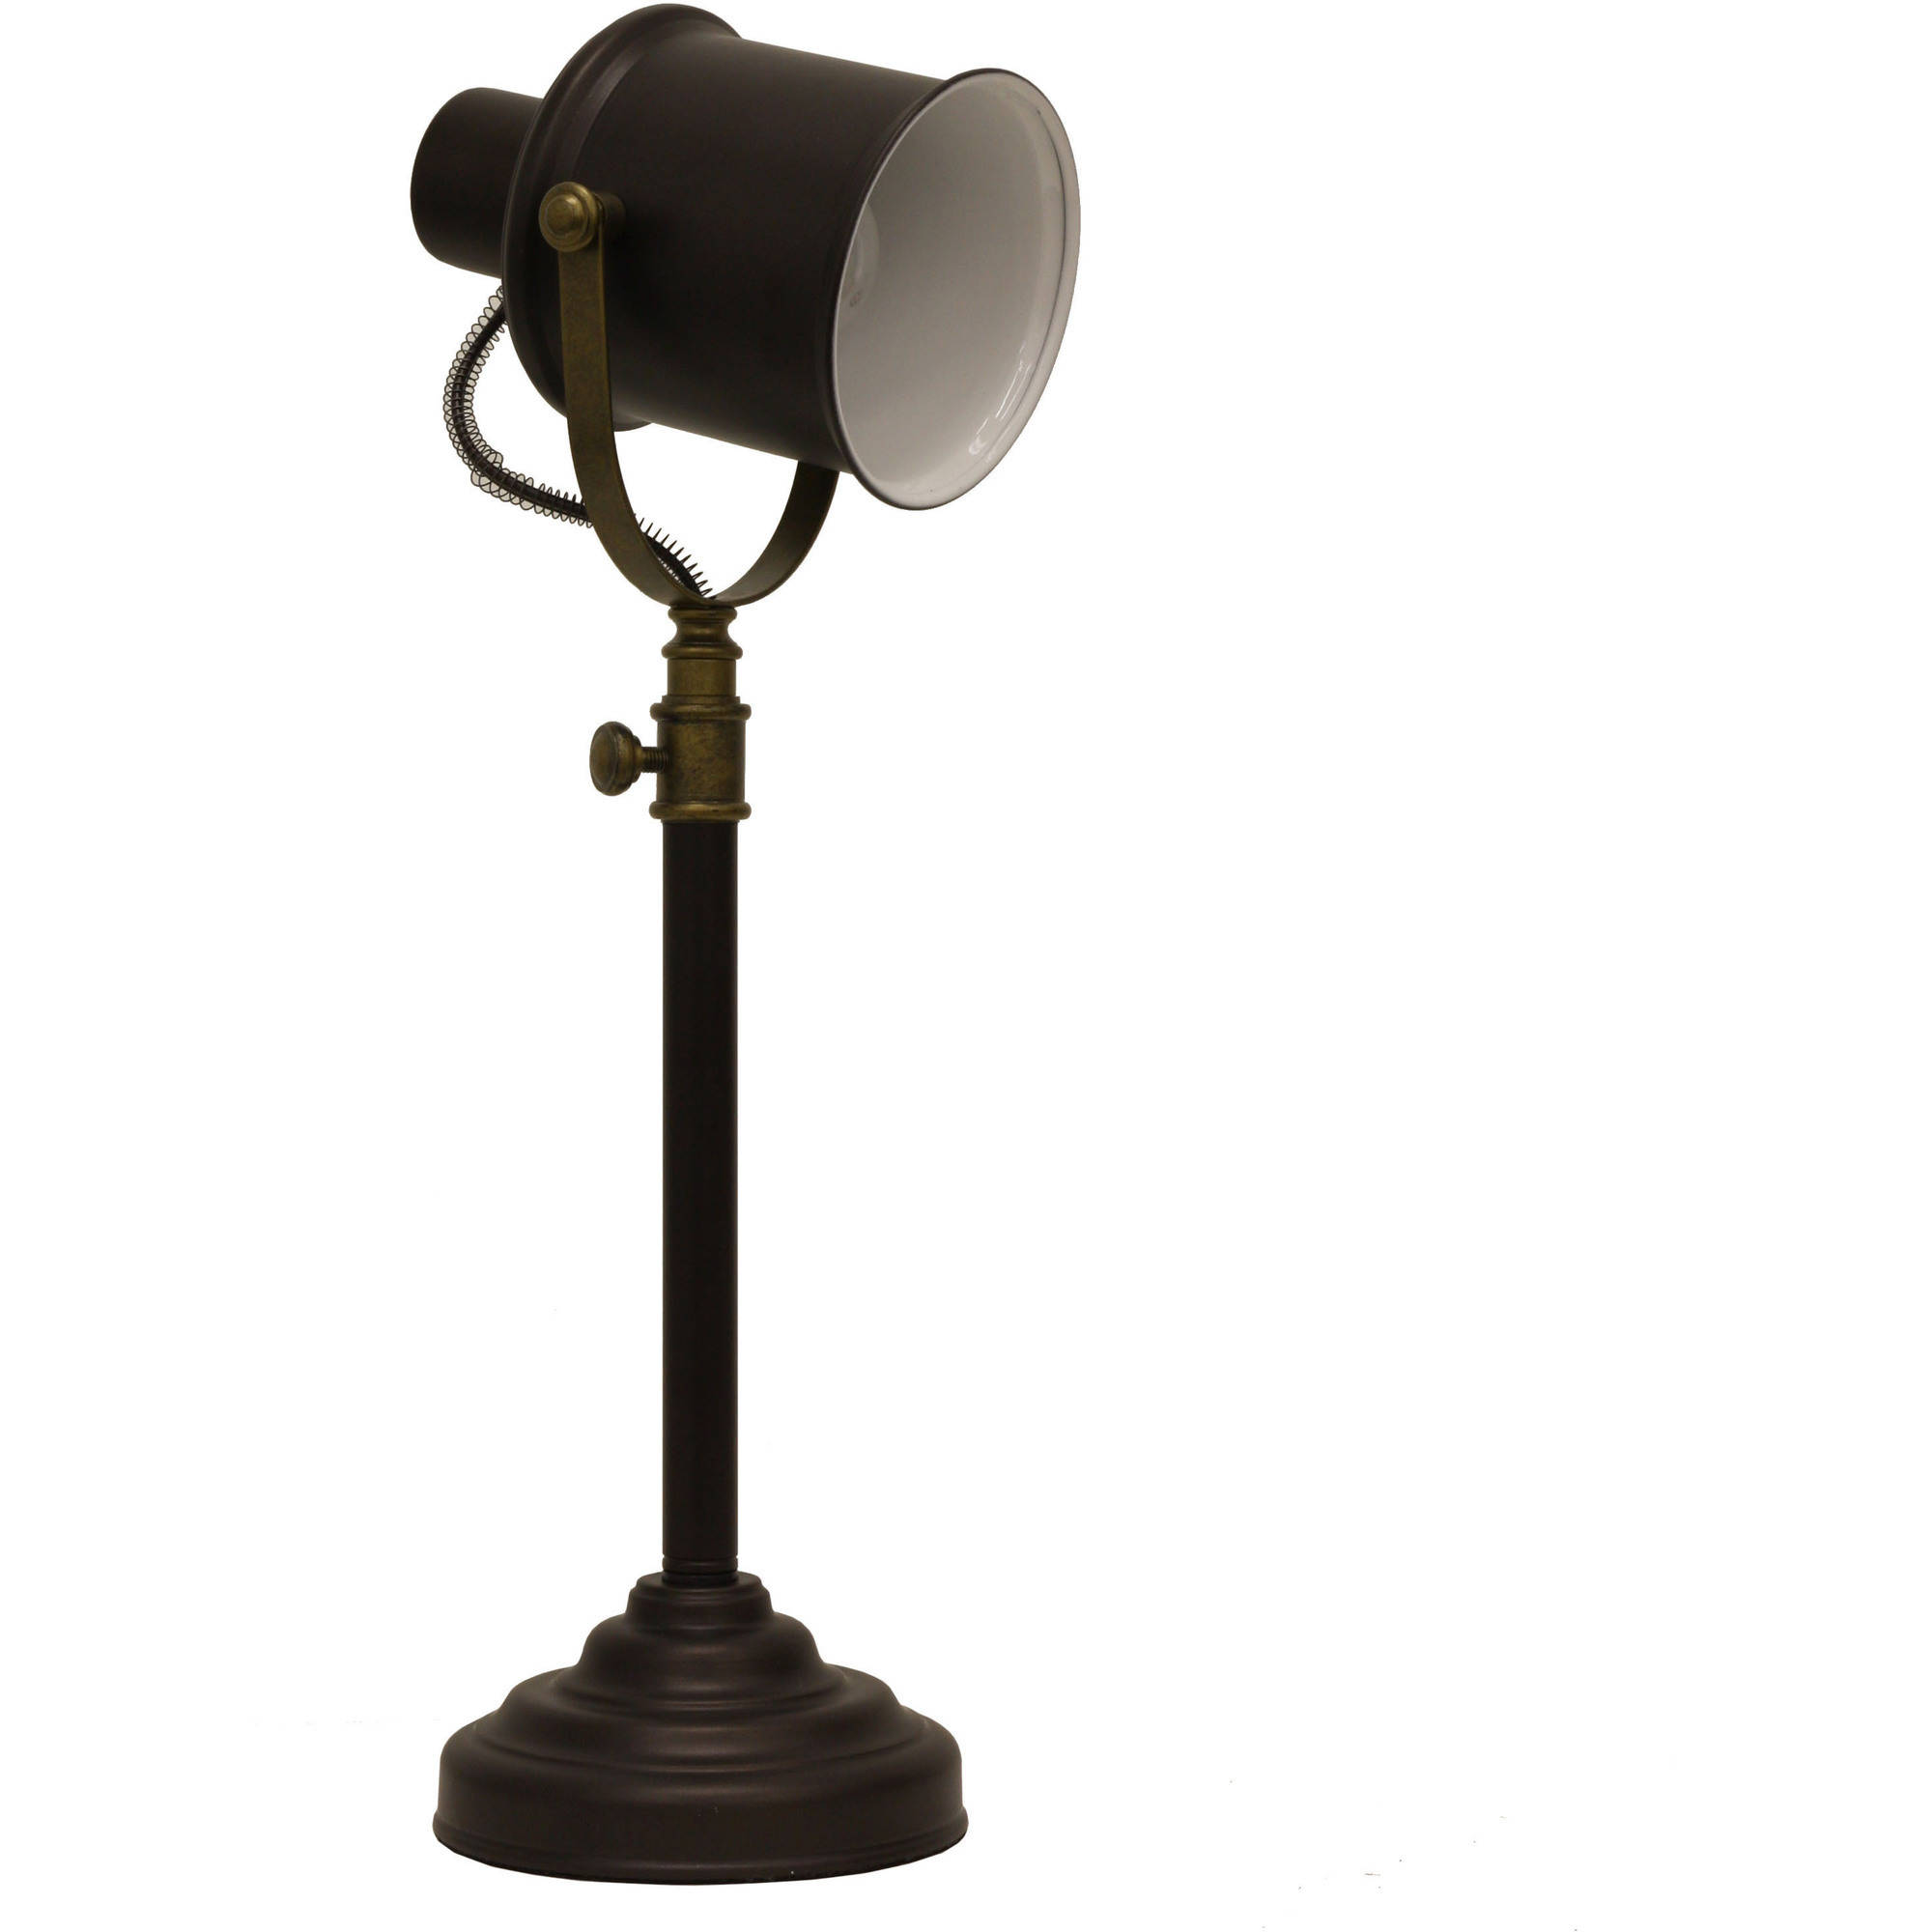 Better Homes and Gardens Two-Tone Spotlight Desk Lamp by JIMCO LAMP CO.